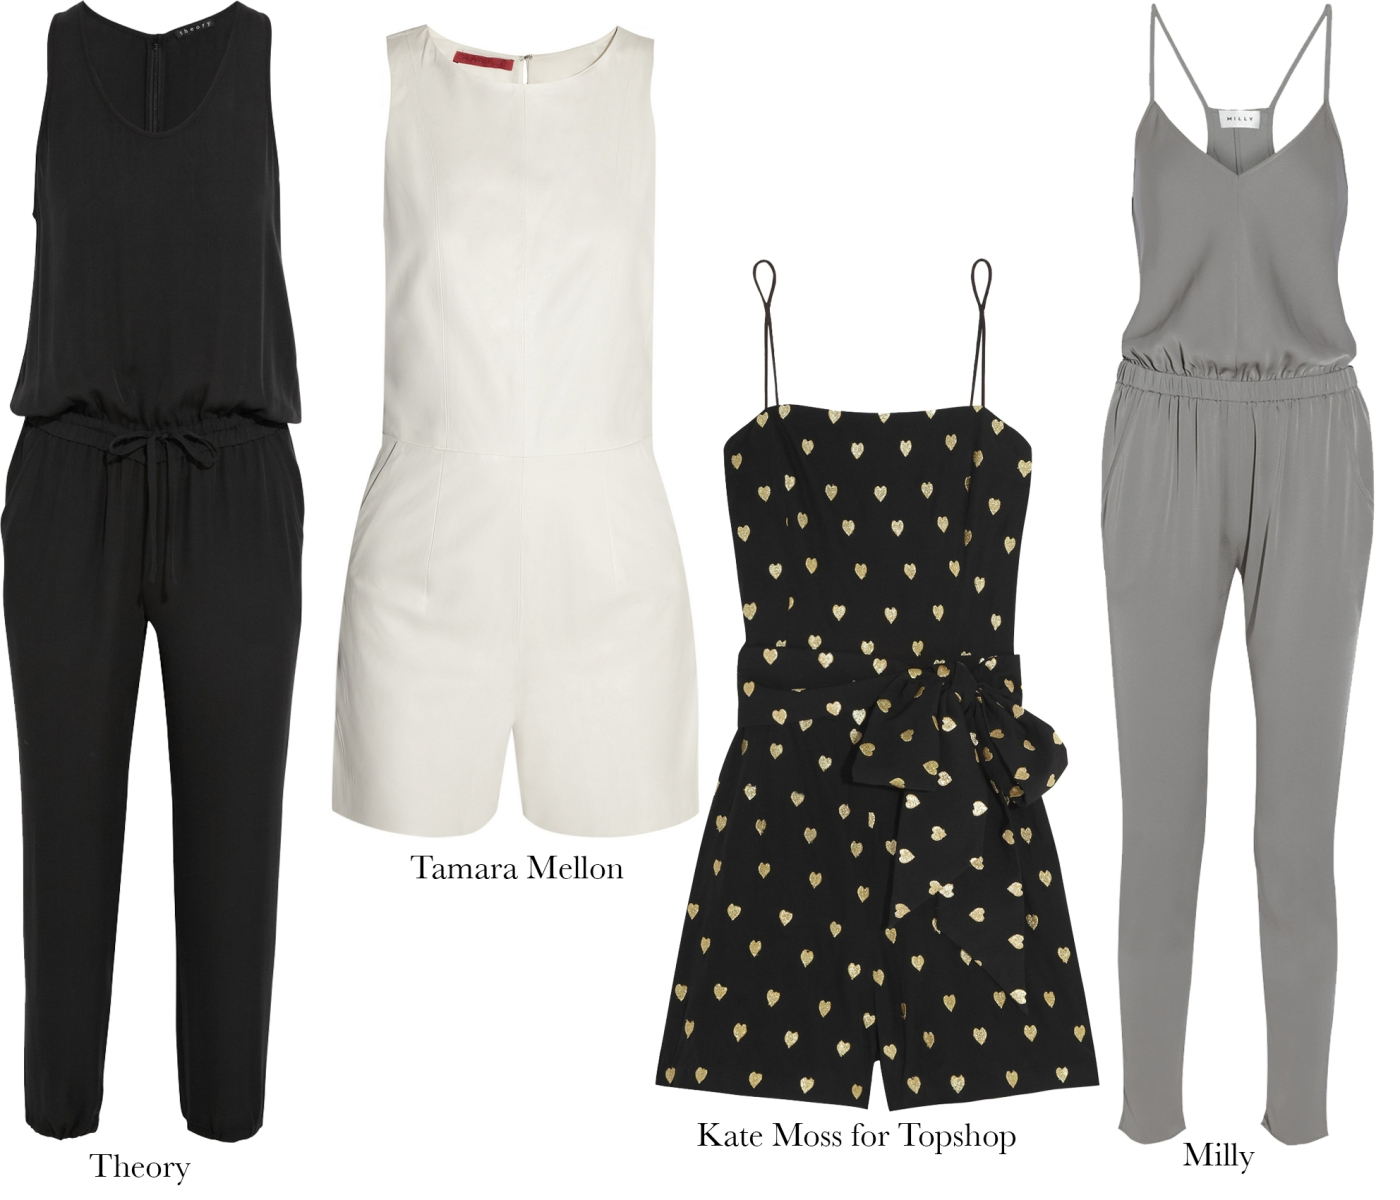 The Summer Wardrobe- Playsuit Jumpsuit